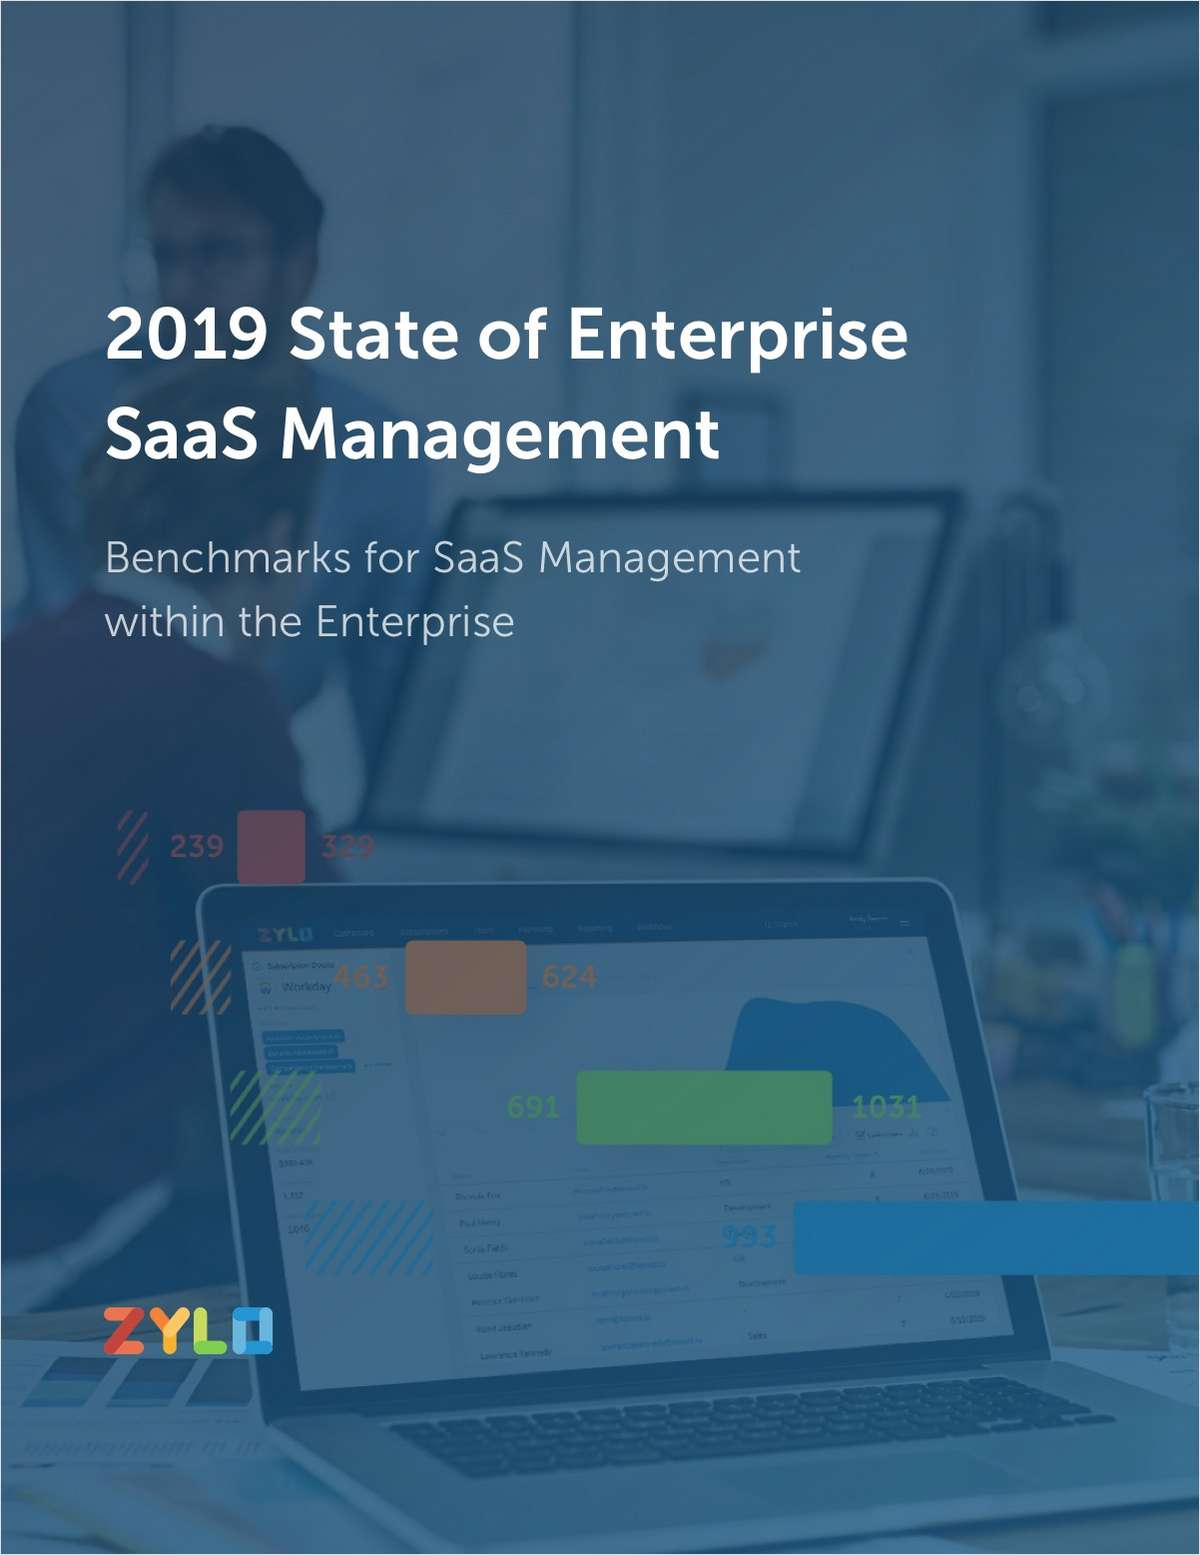 2019 State of Enterprise SaaS Management